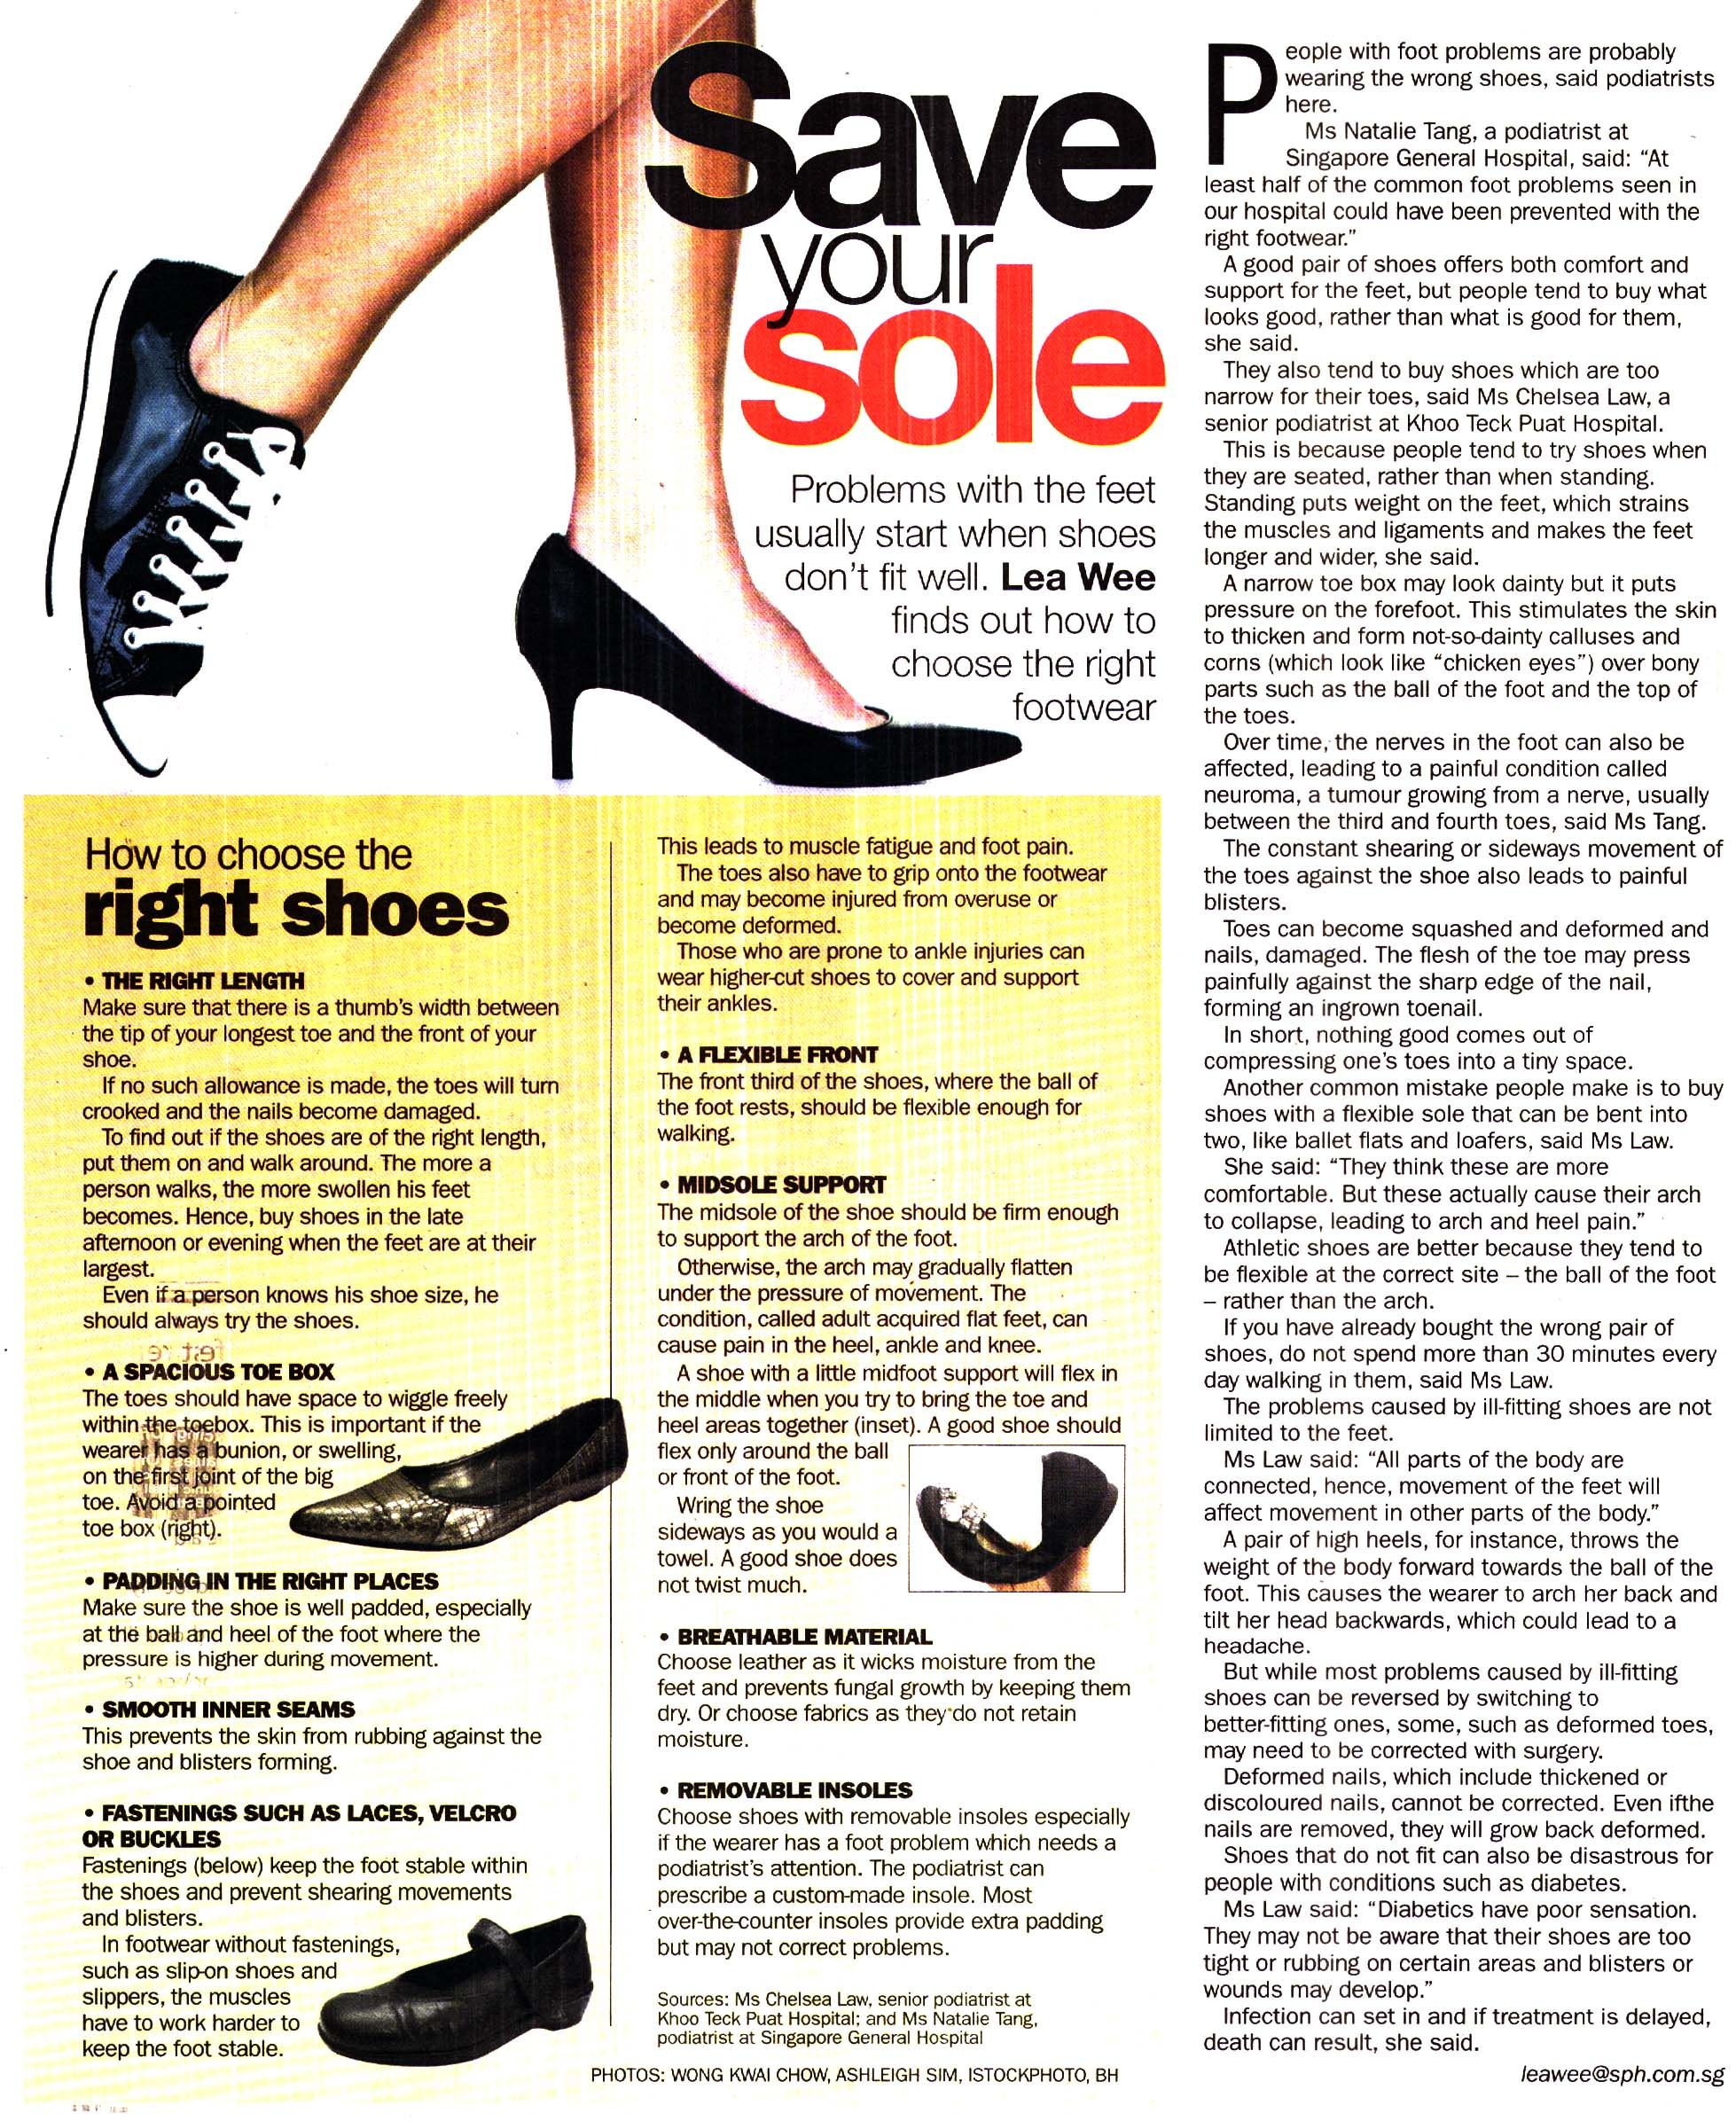 How to choose shoes